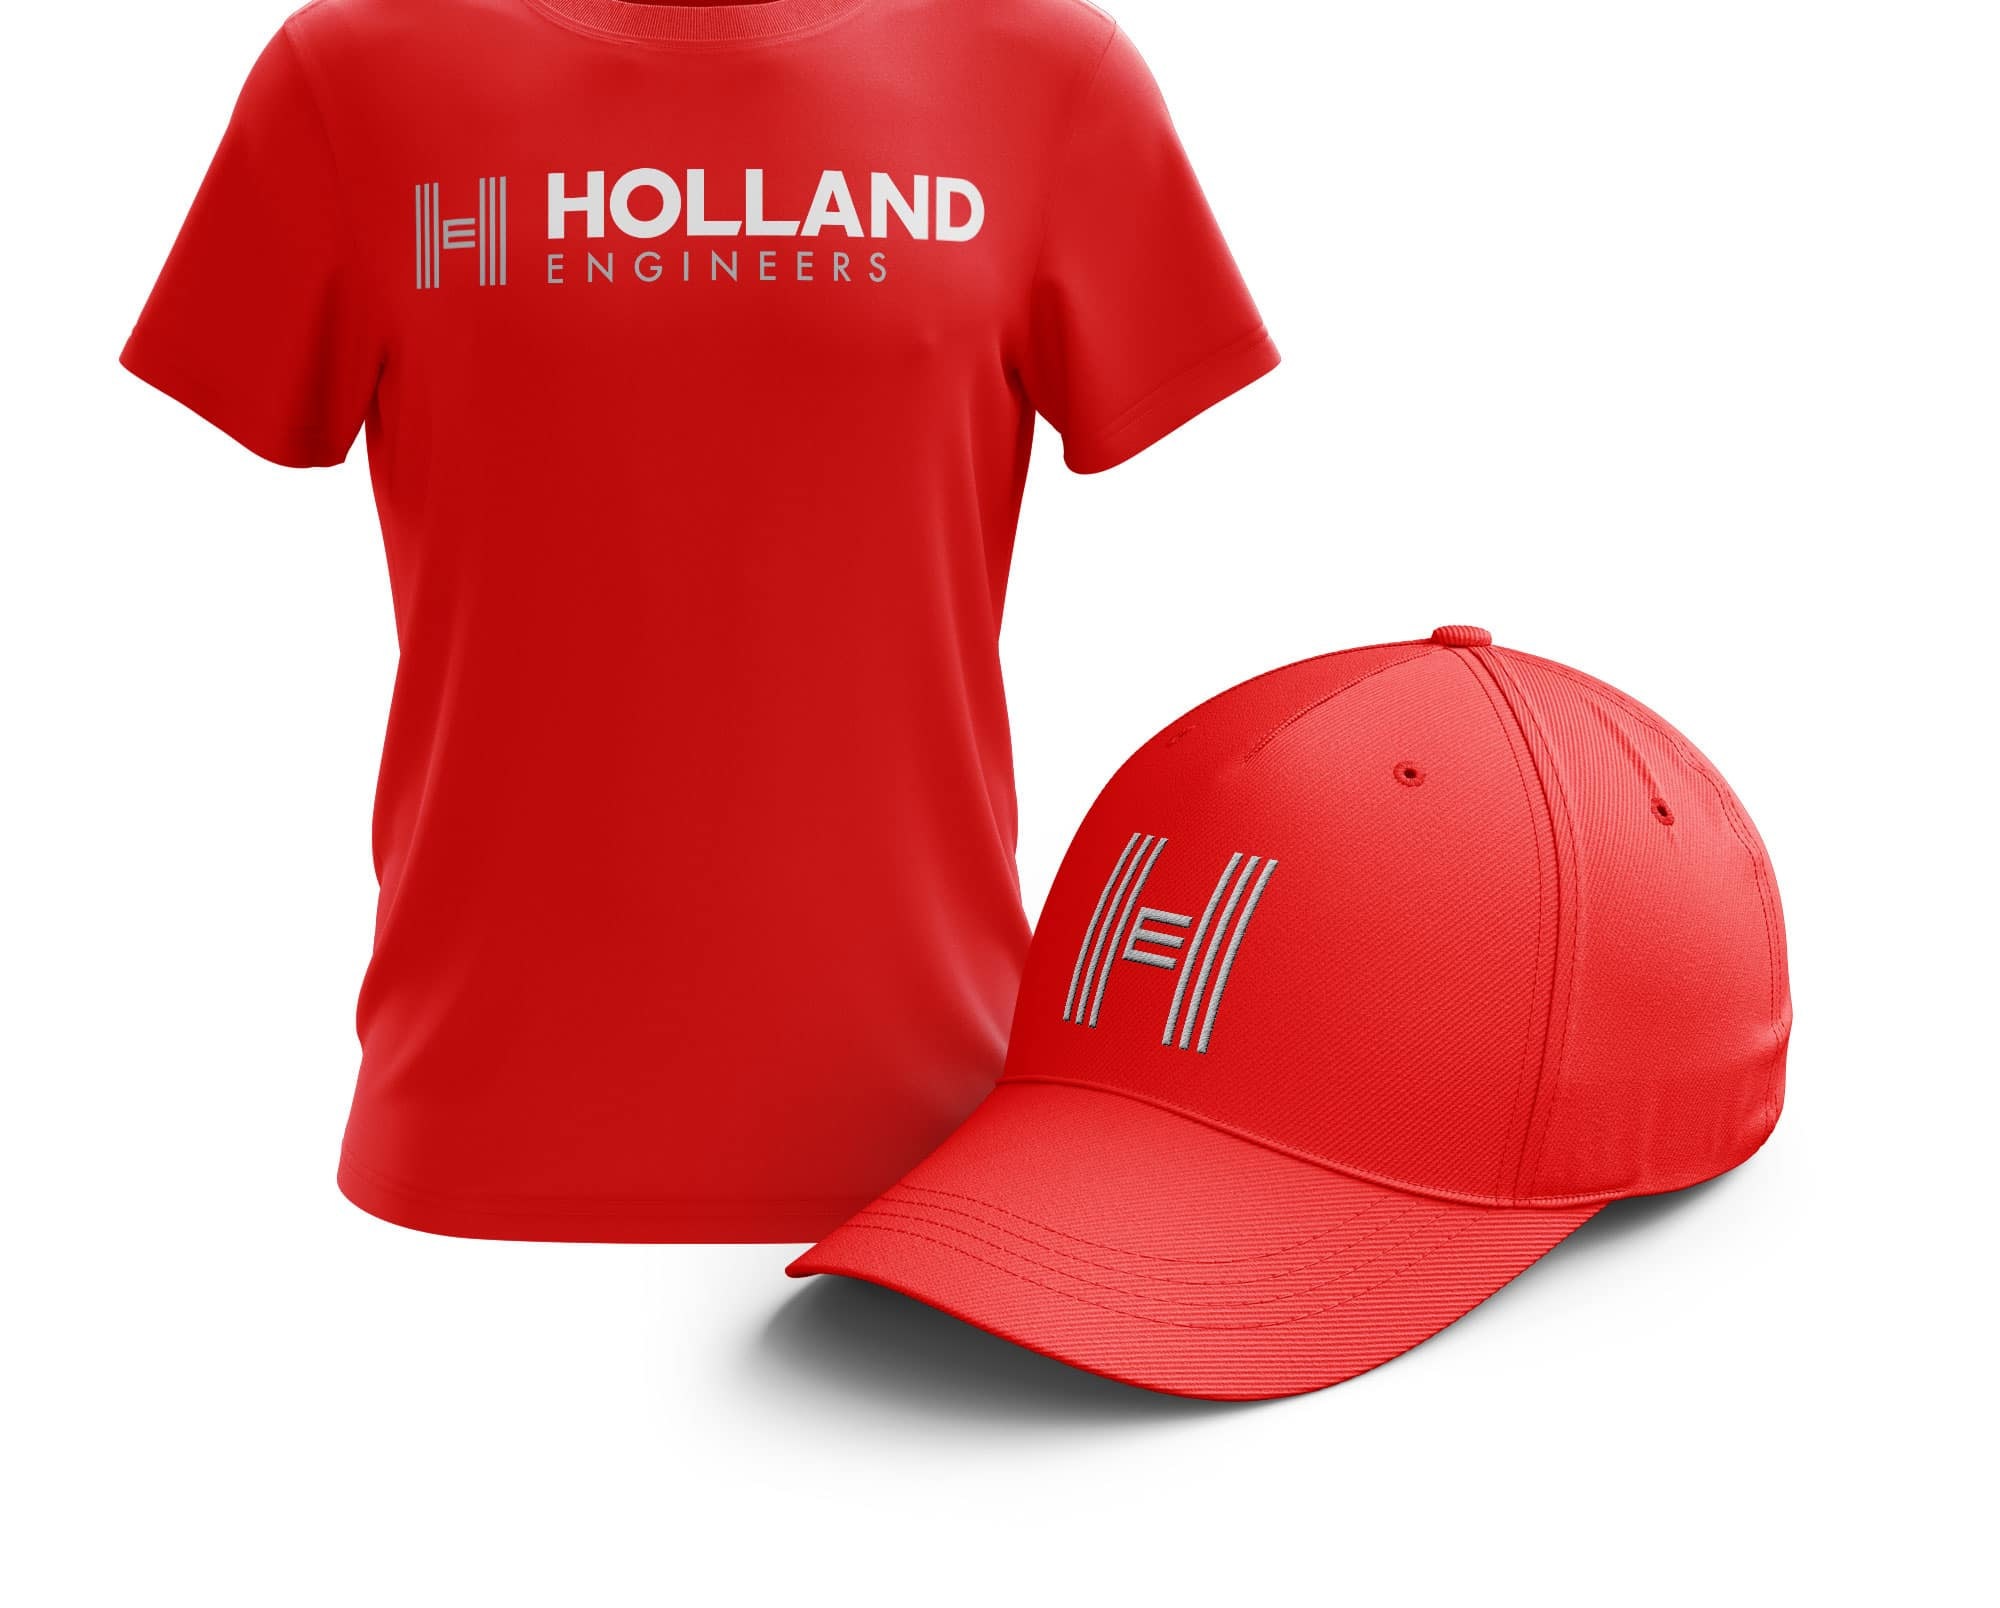 Holland Engineers shirt and hat design